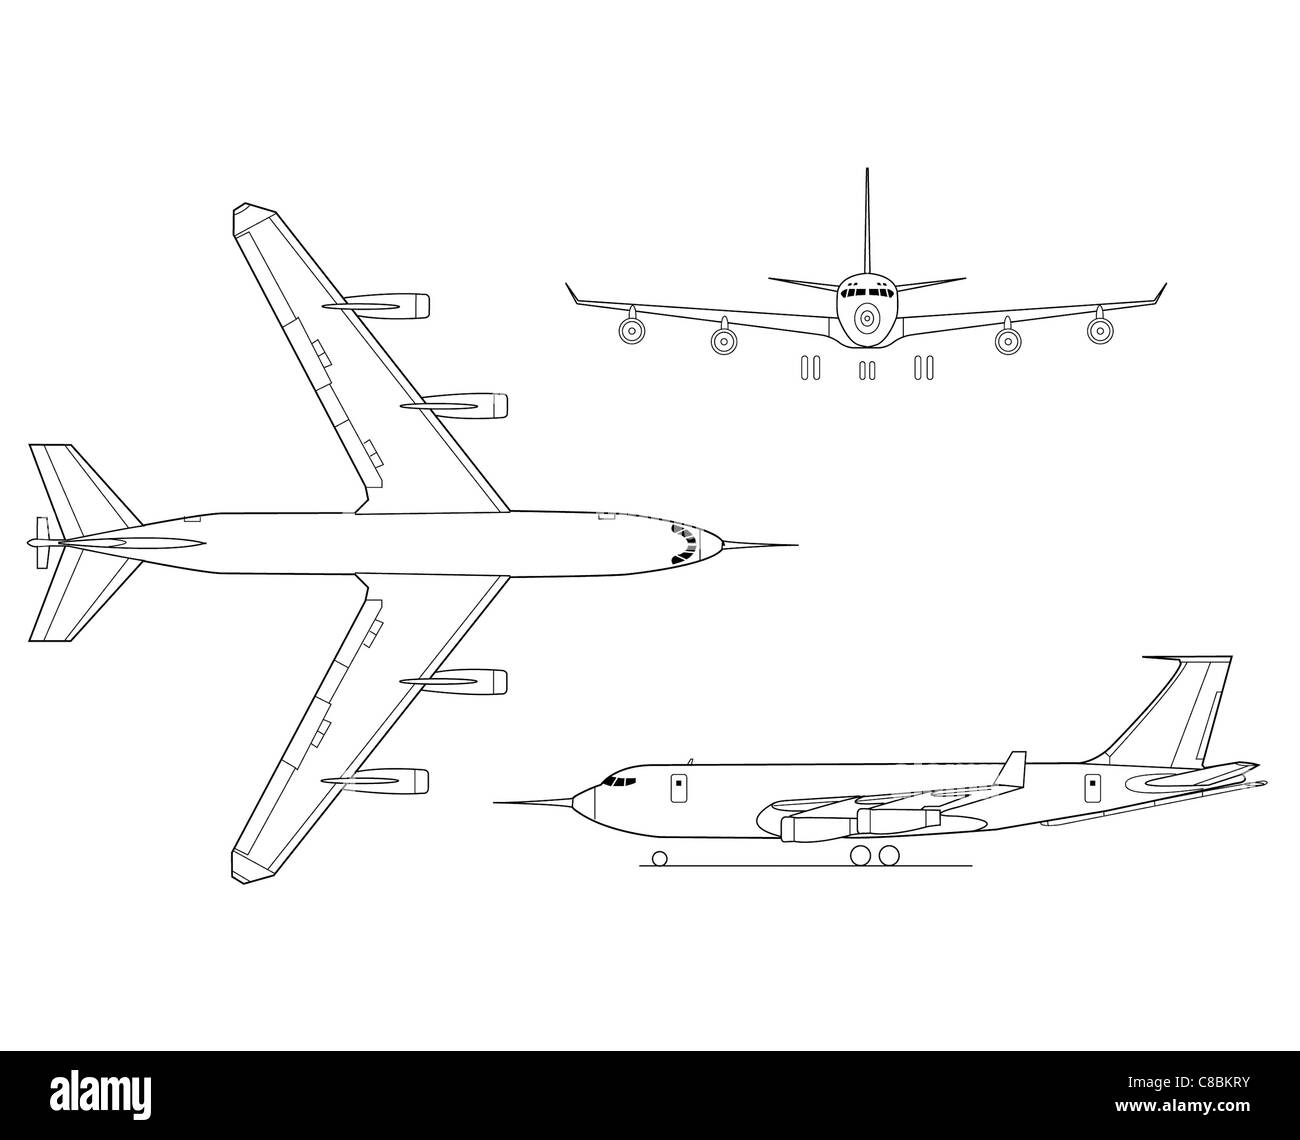 Kc 135 Drawings Art Outline Wiring Diagrams Laptop Power Supply Circuit Using Top269eg View Aircraft Line Drawing Cut Out Stock Images Pictures Alamy Rh Com Airplane